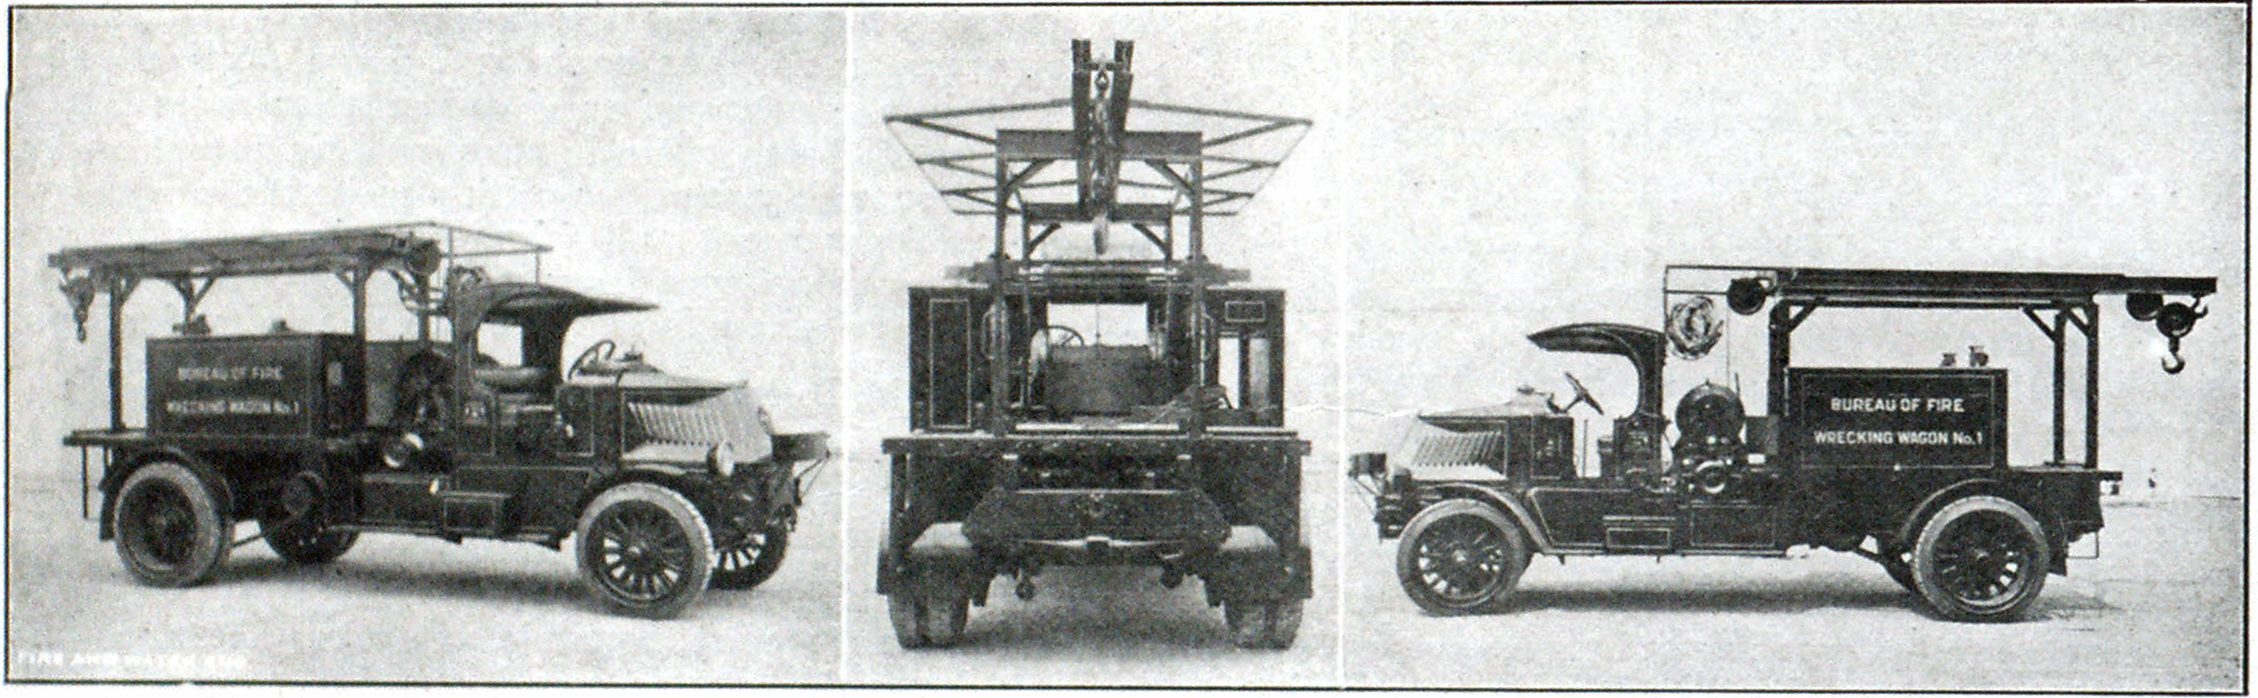 Three Views of Wrecker Truck in Use by the Bureau of Fire of Philadelphia, Pa.